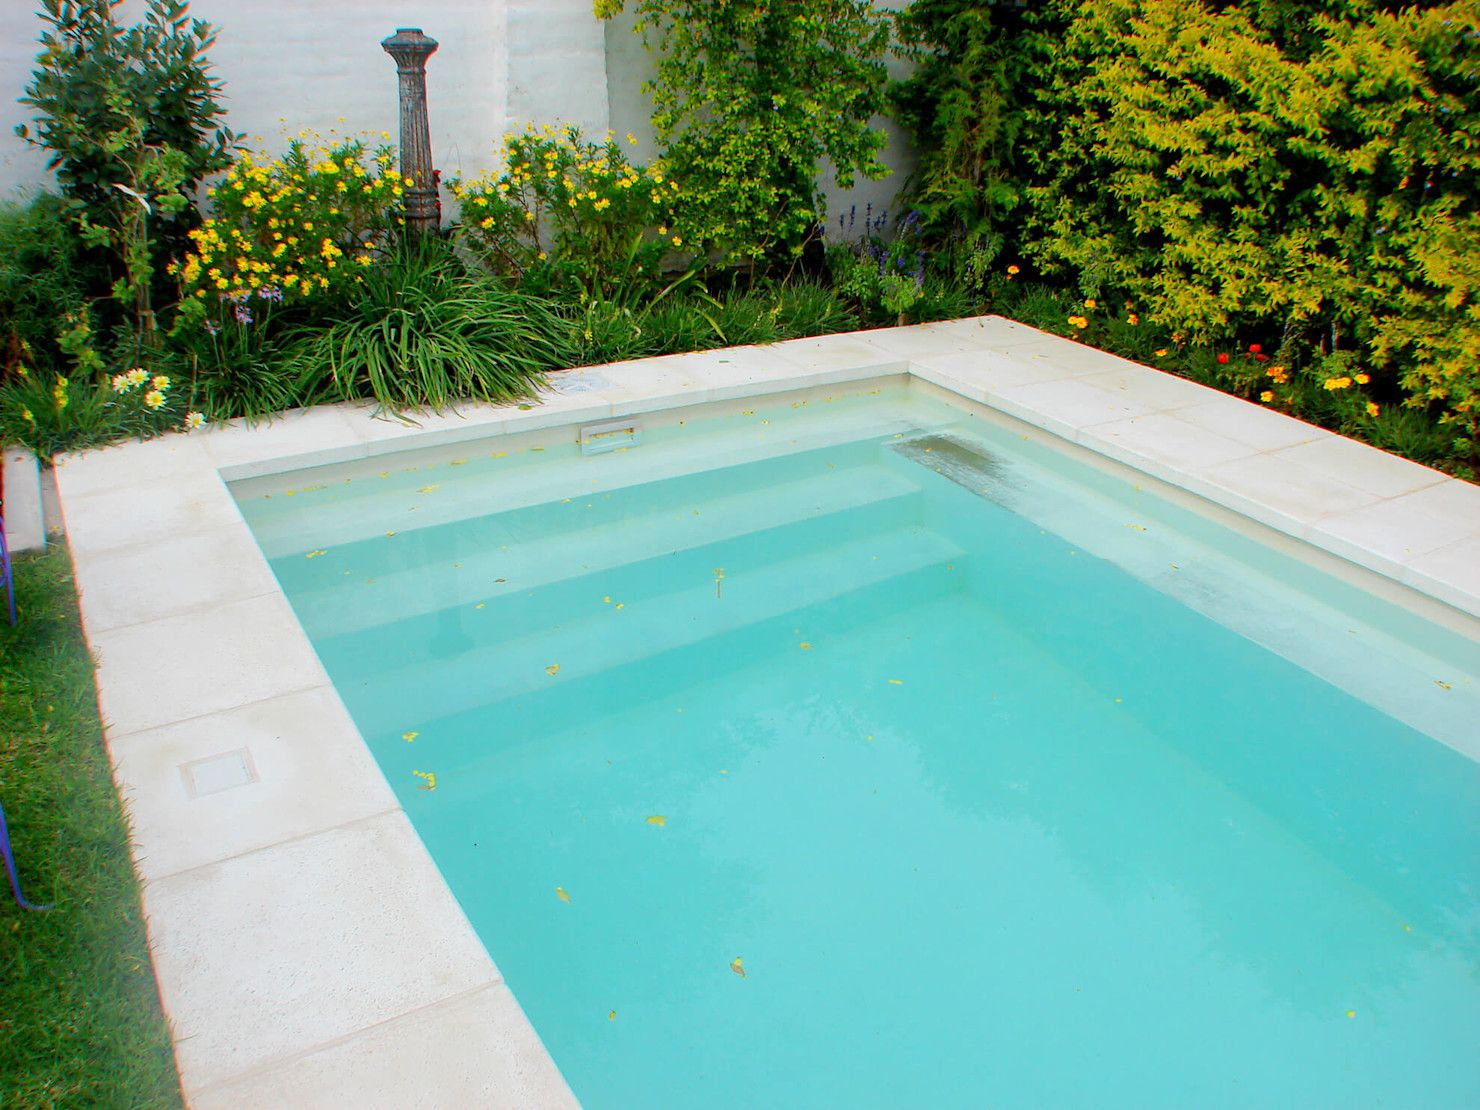 10 Pools That Are Perfect For Small Gardens Homify Small Pool Design Small Gardens Pool